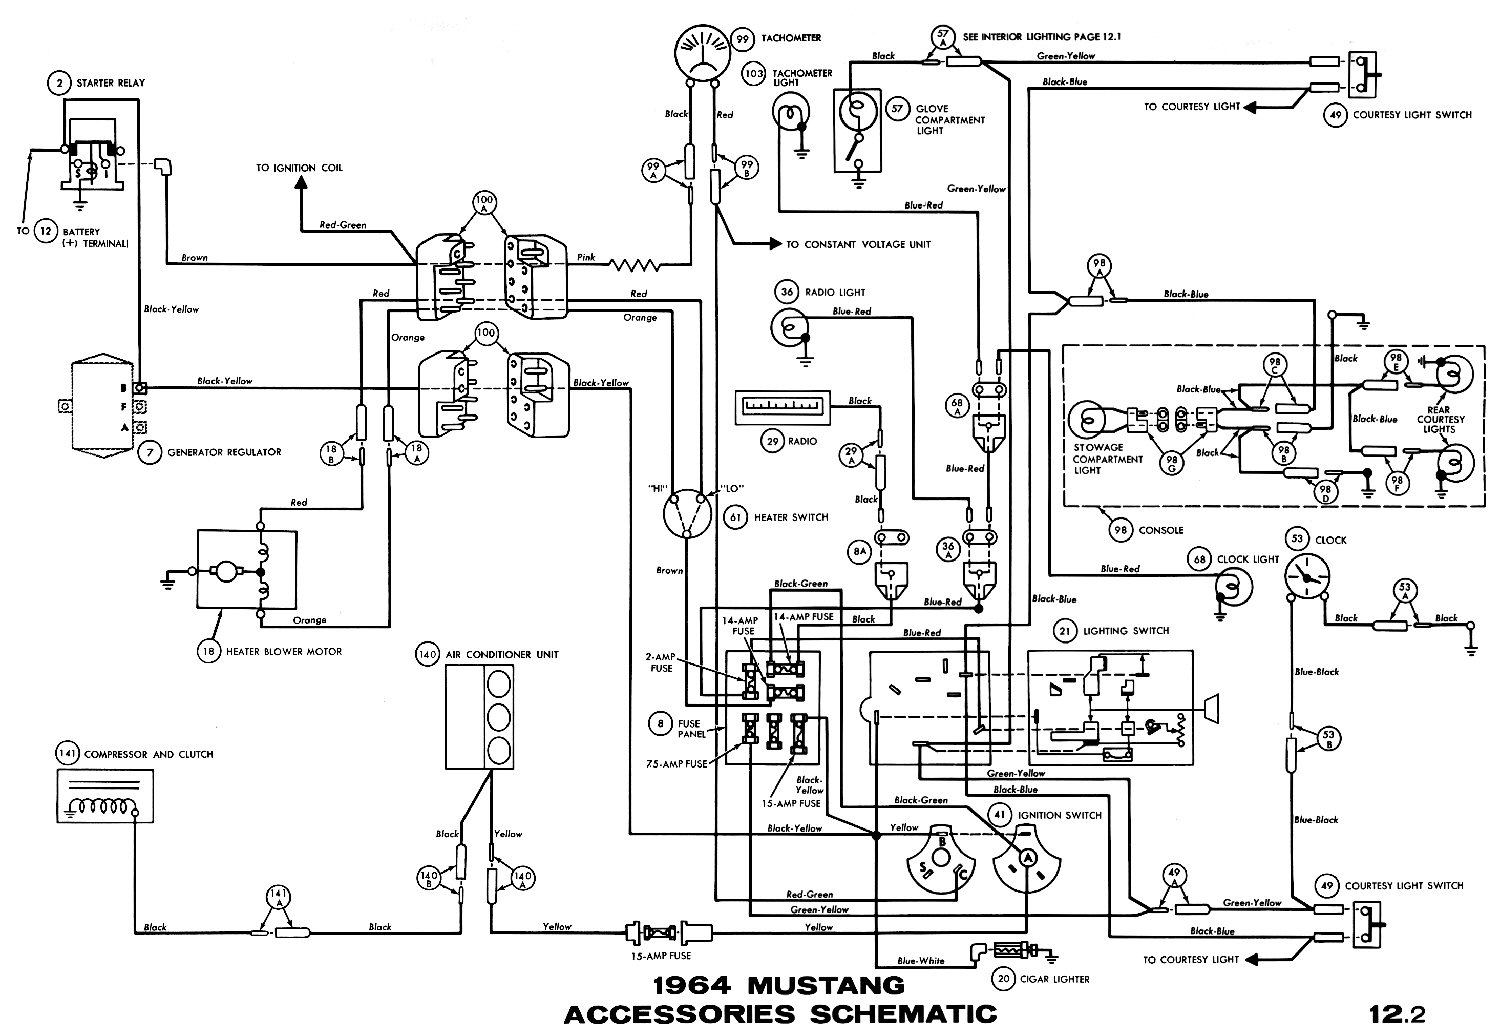 1965 mustang radio wiring diagram - wiring diagram faith-cable -  faith-cable.piuconzero.it  piuconzero.it